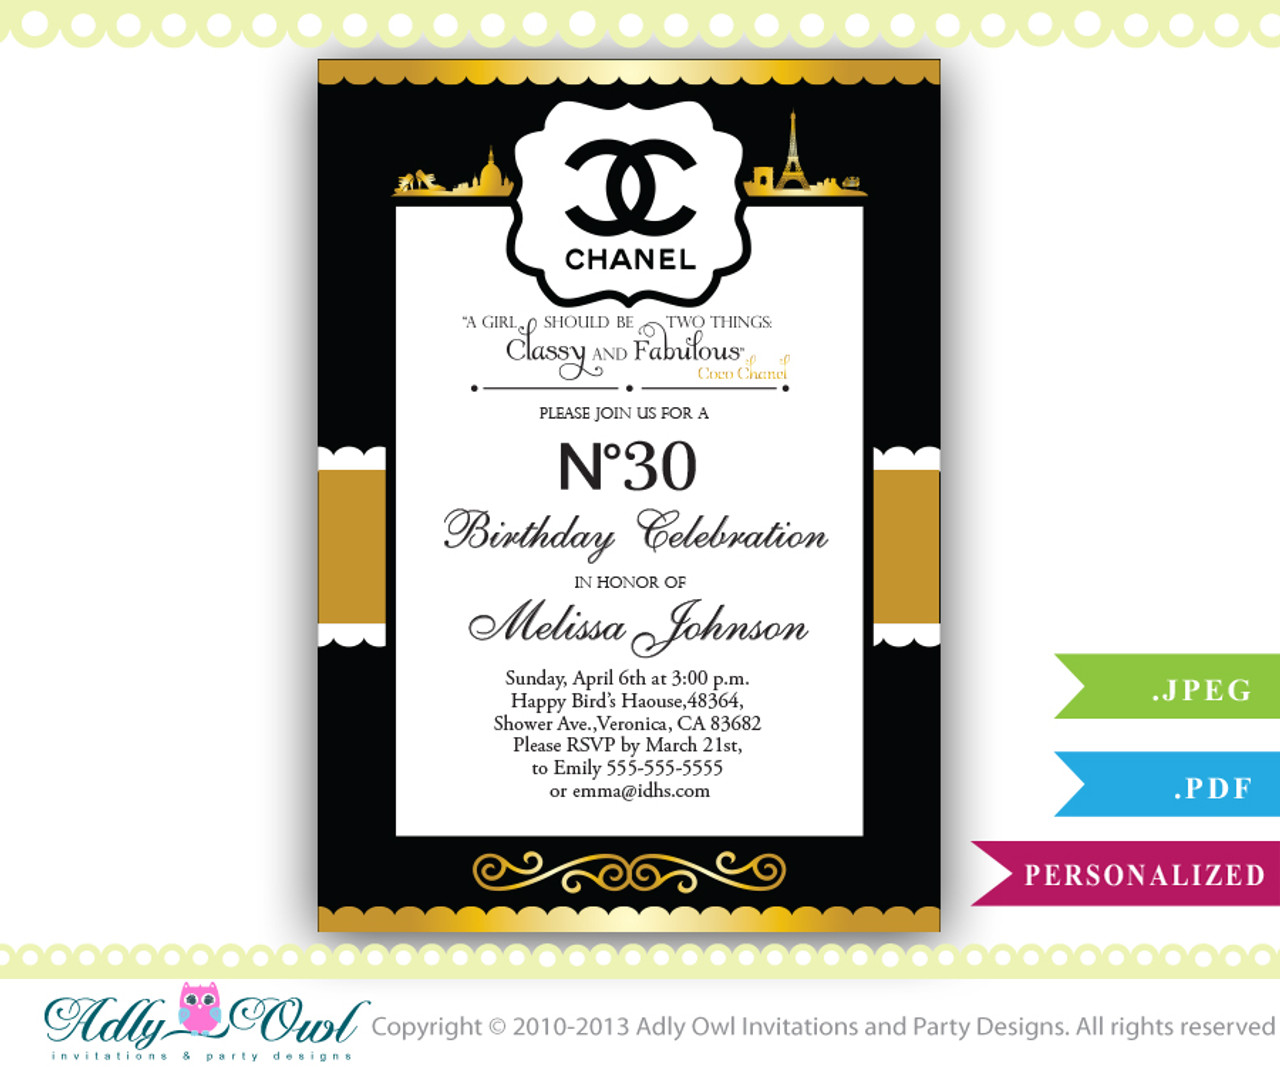 Personalized Chanel Birthday Party Celebration Invite For Any Age